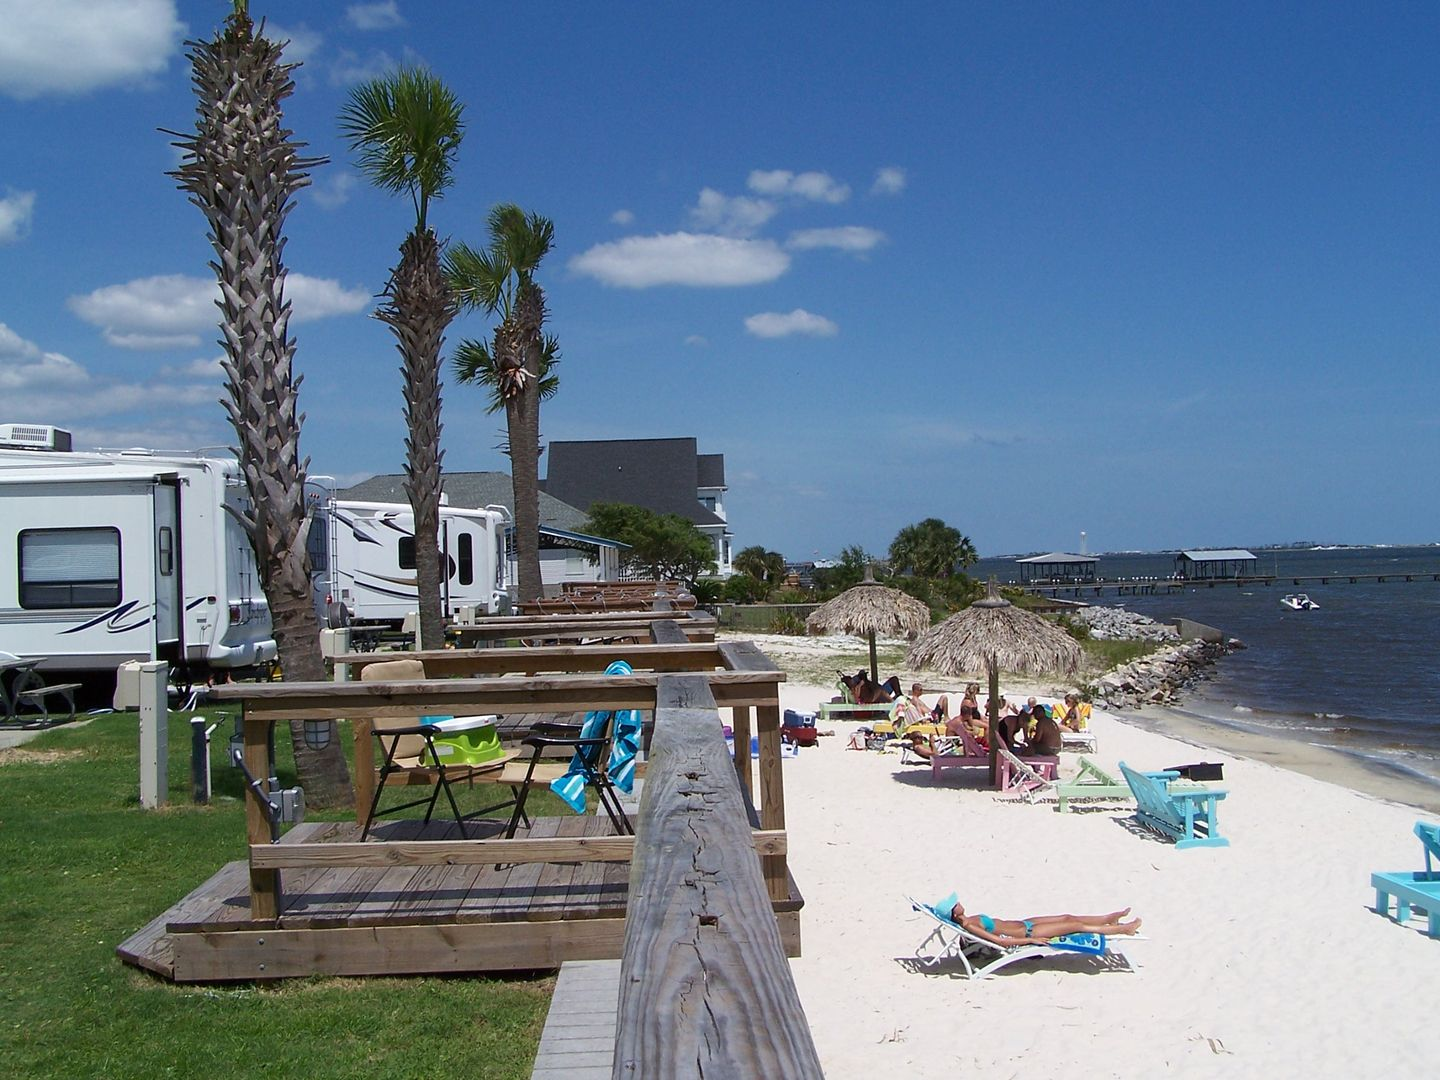 Emerald Beach Rv Park Rv Park Rv Park Reviews Recreational Vehicle Facilities Camping Resort Rv Parks And Campgrounds Beach Camping